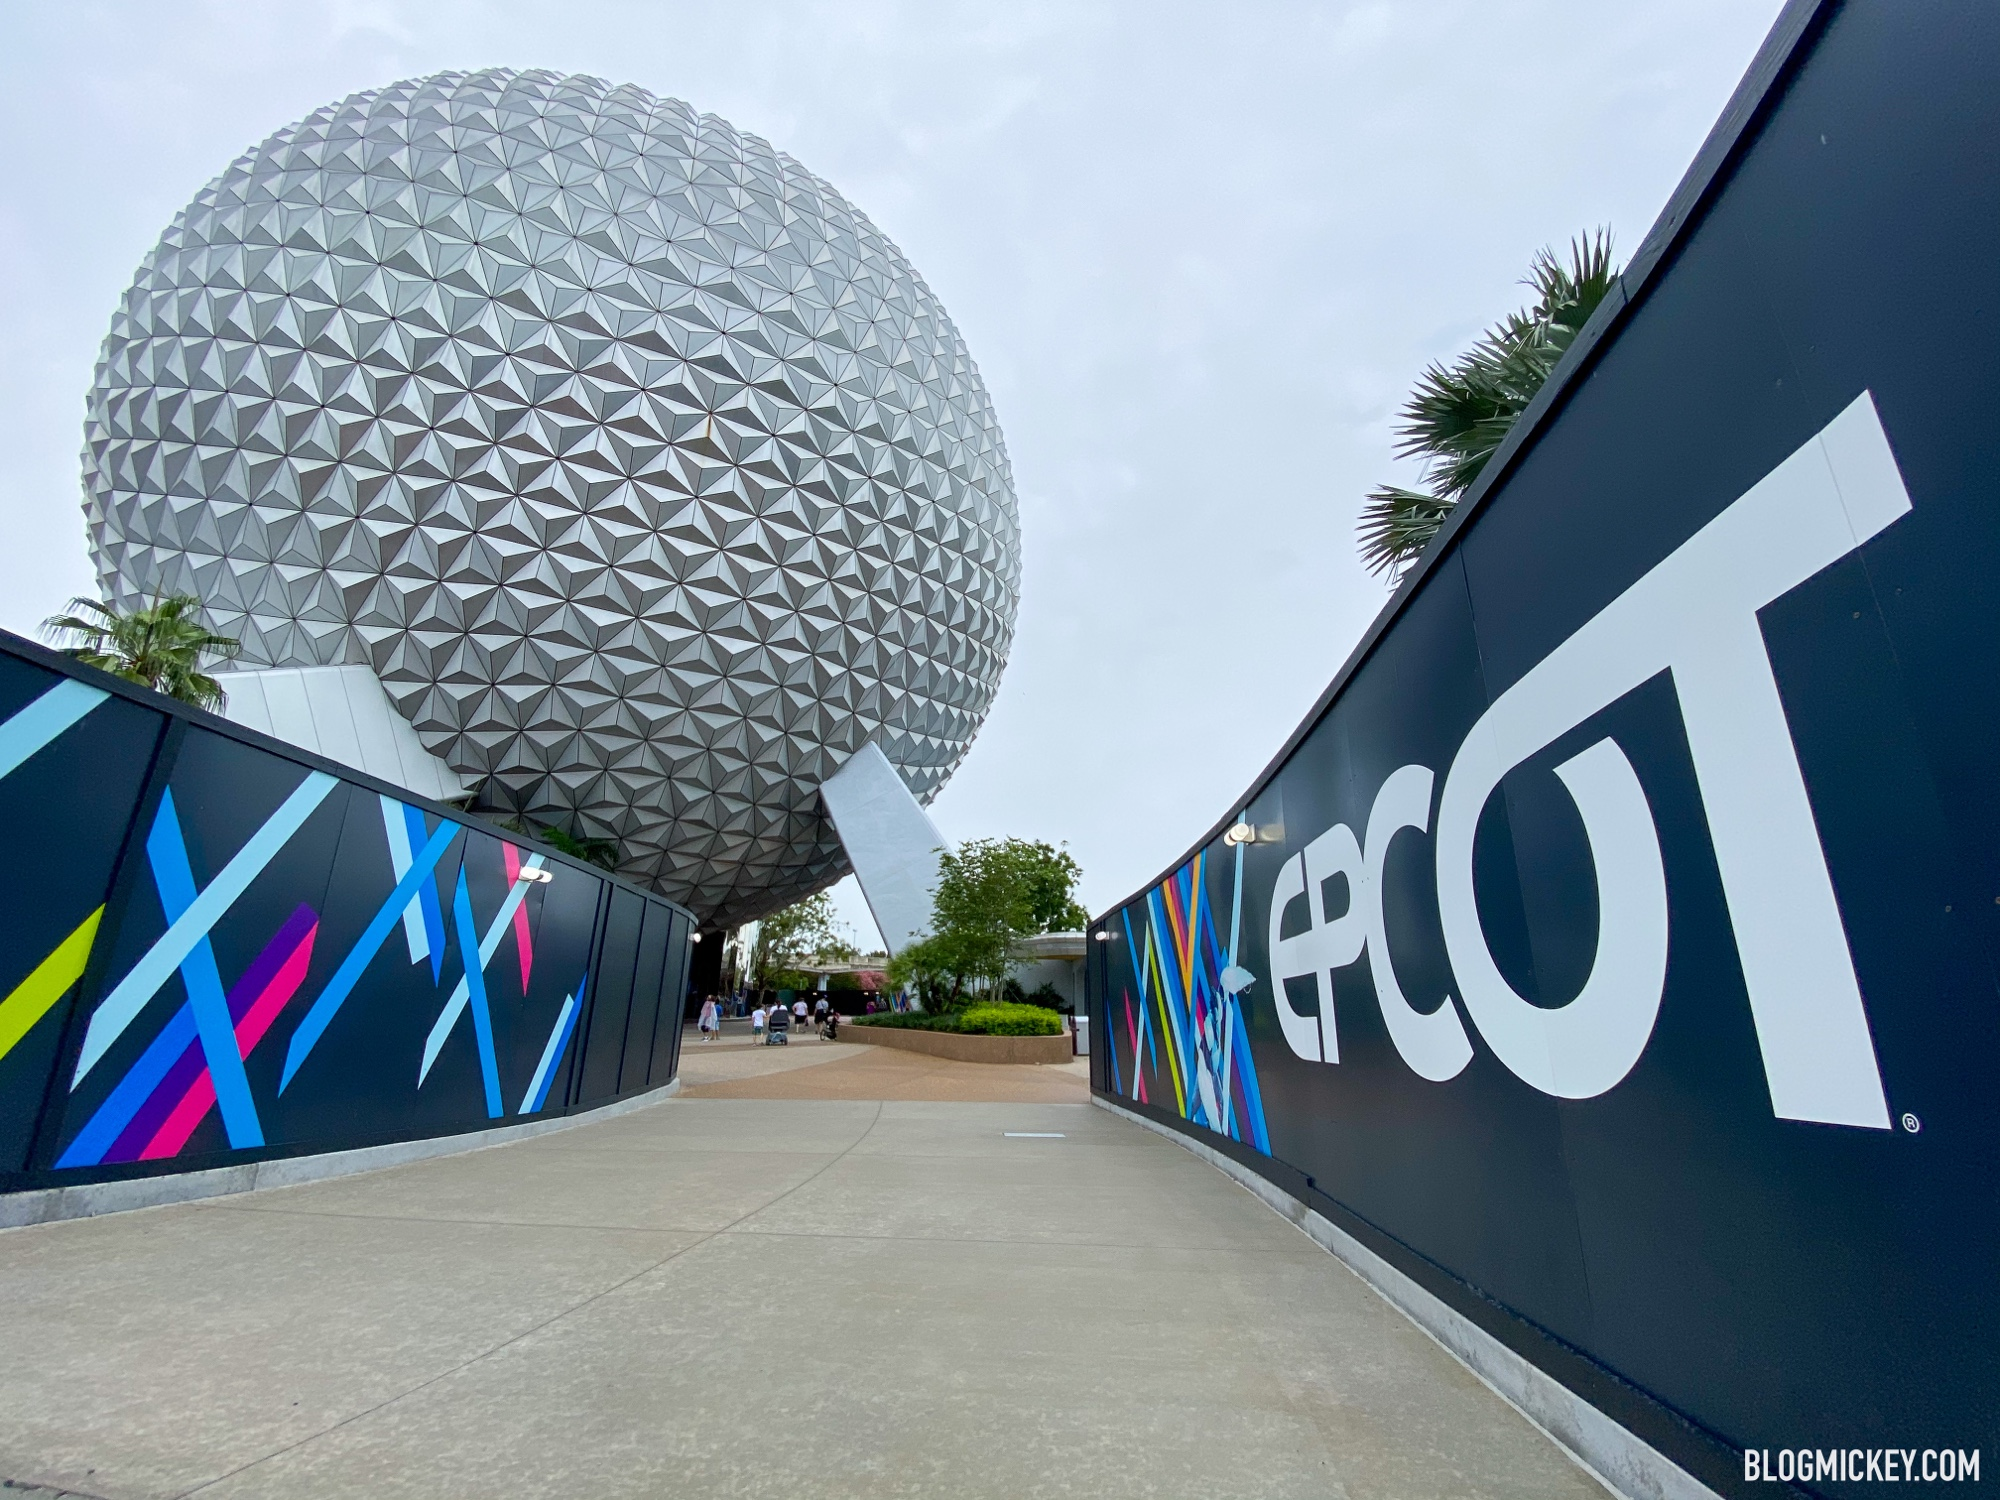 Two Guns Found in Diaper Bag at EPCOT